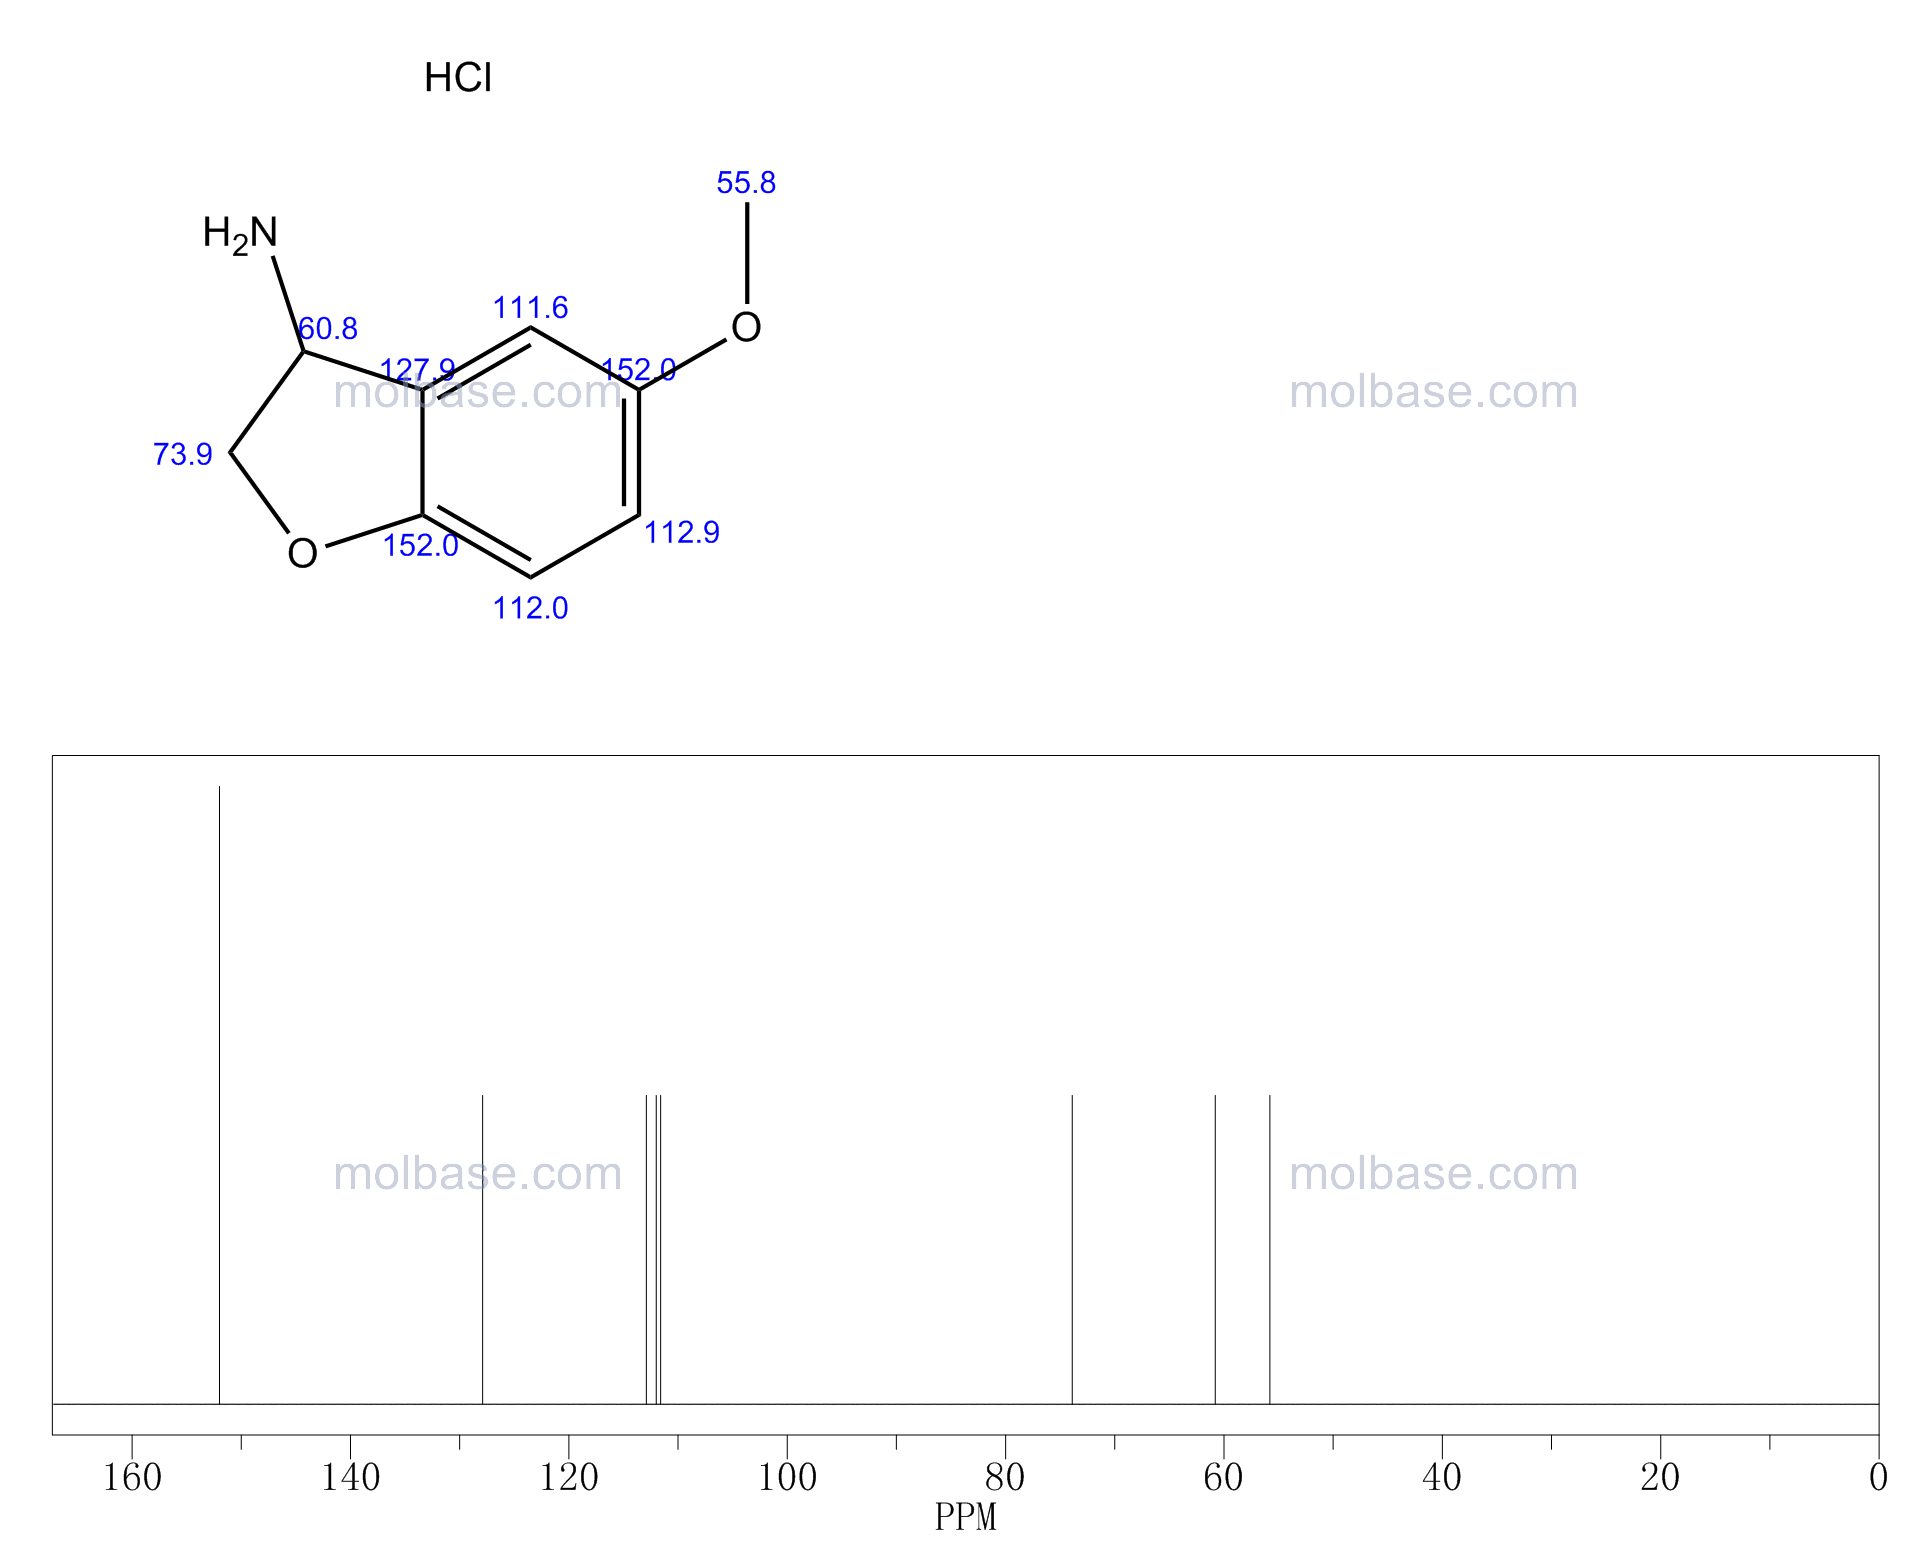 5-methoxy-2,3-dihydro-1-benzofuran-3-amine,hydrochloride NMR spectra analysis, Chemical CAS NO. 109926-36-5 NMR spectral analysis, 5-methoxy-2,3-dihydro-1-benzofuran-3-amine,hydrochloride C-NMR spectrum